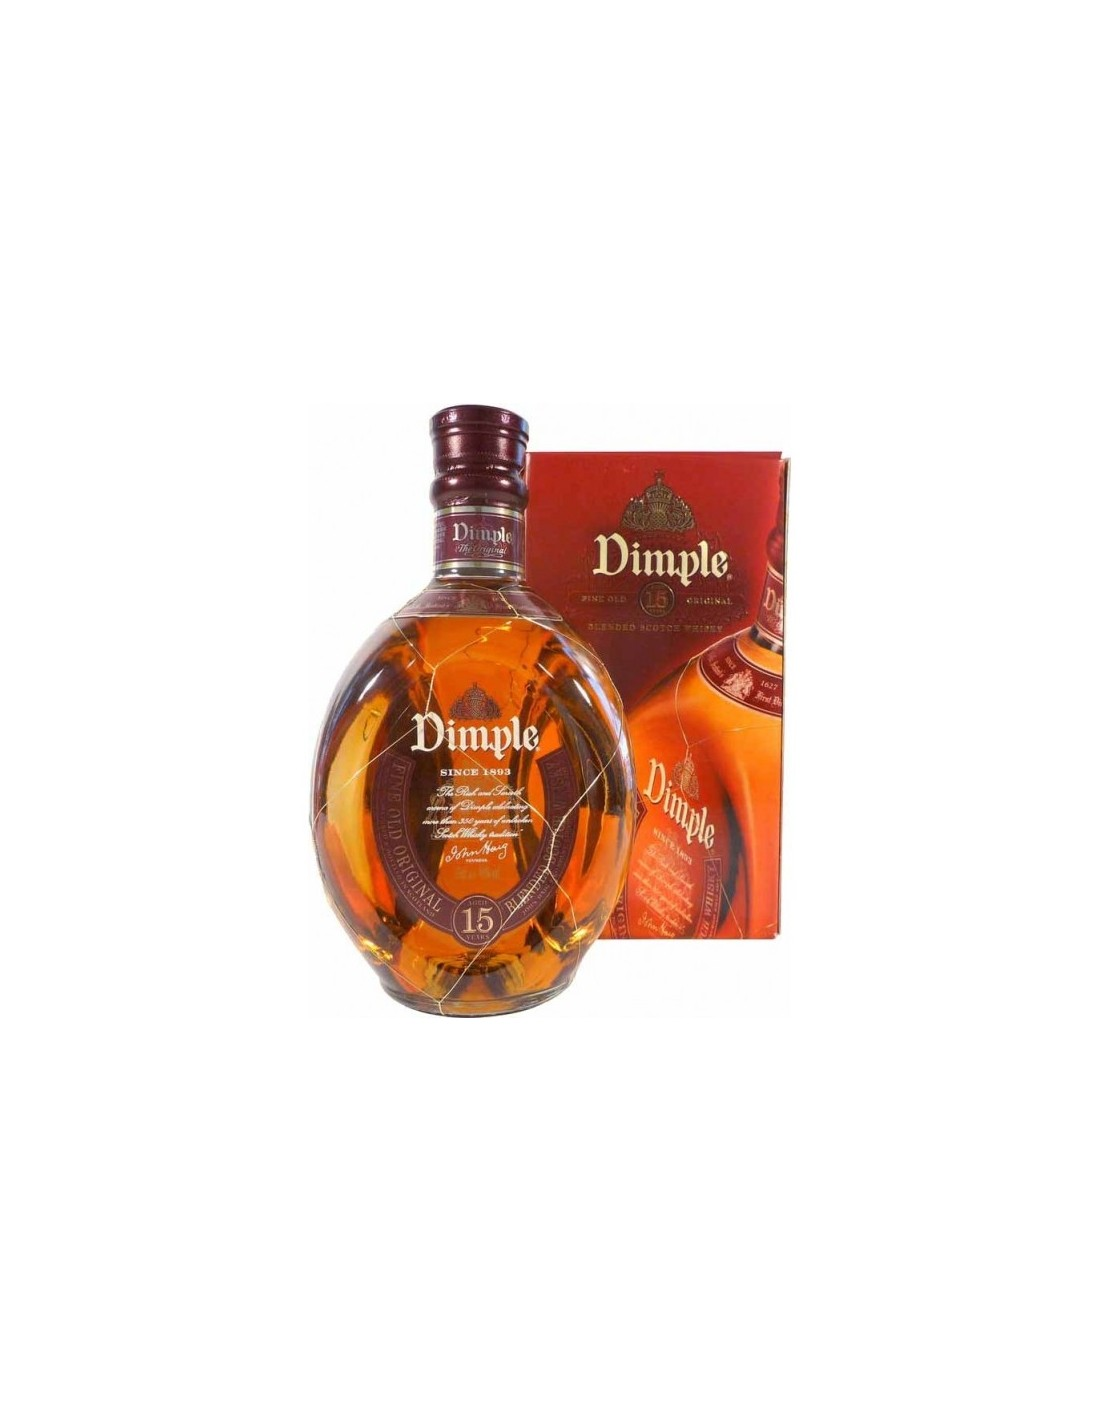 Whisky Dimple, 15 ani, 43% alc., 0.7L, Scotia